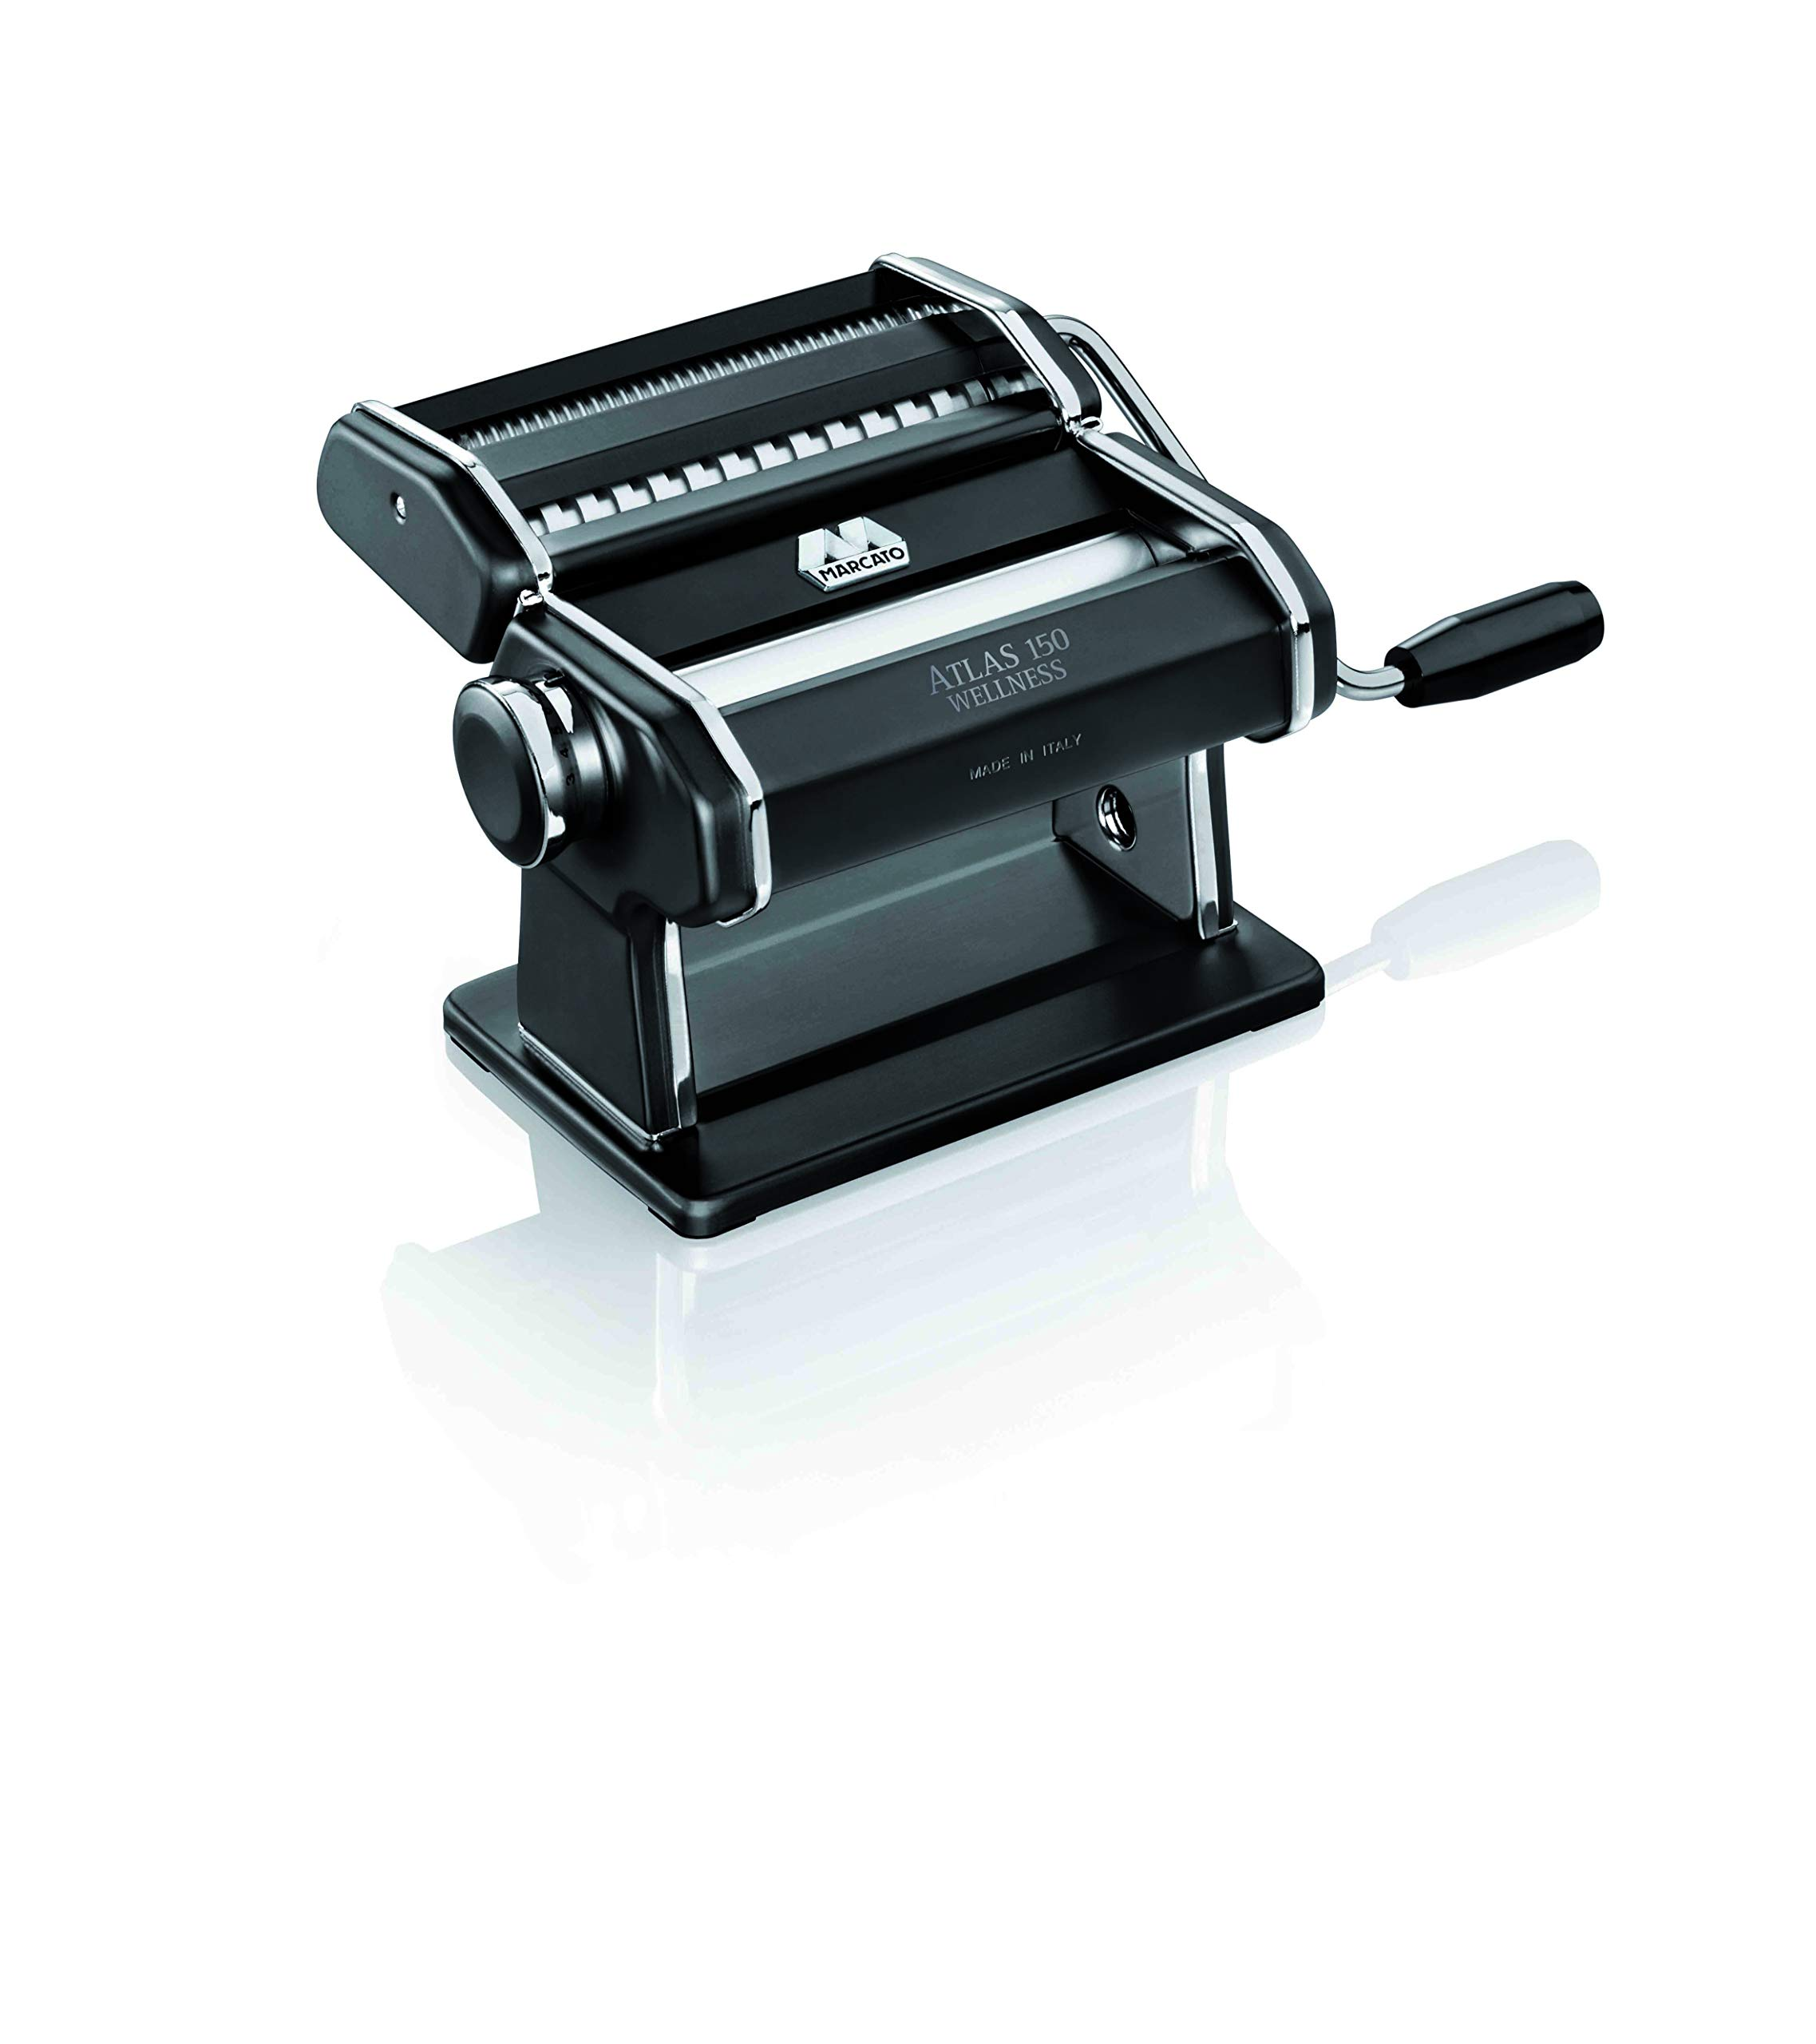 Marcato Atlas Pasta Machine, Made in Italy, Black, Includes Pasta Cutter, Hand Crank, and Instructions by Marcato